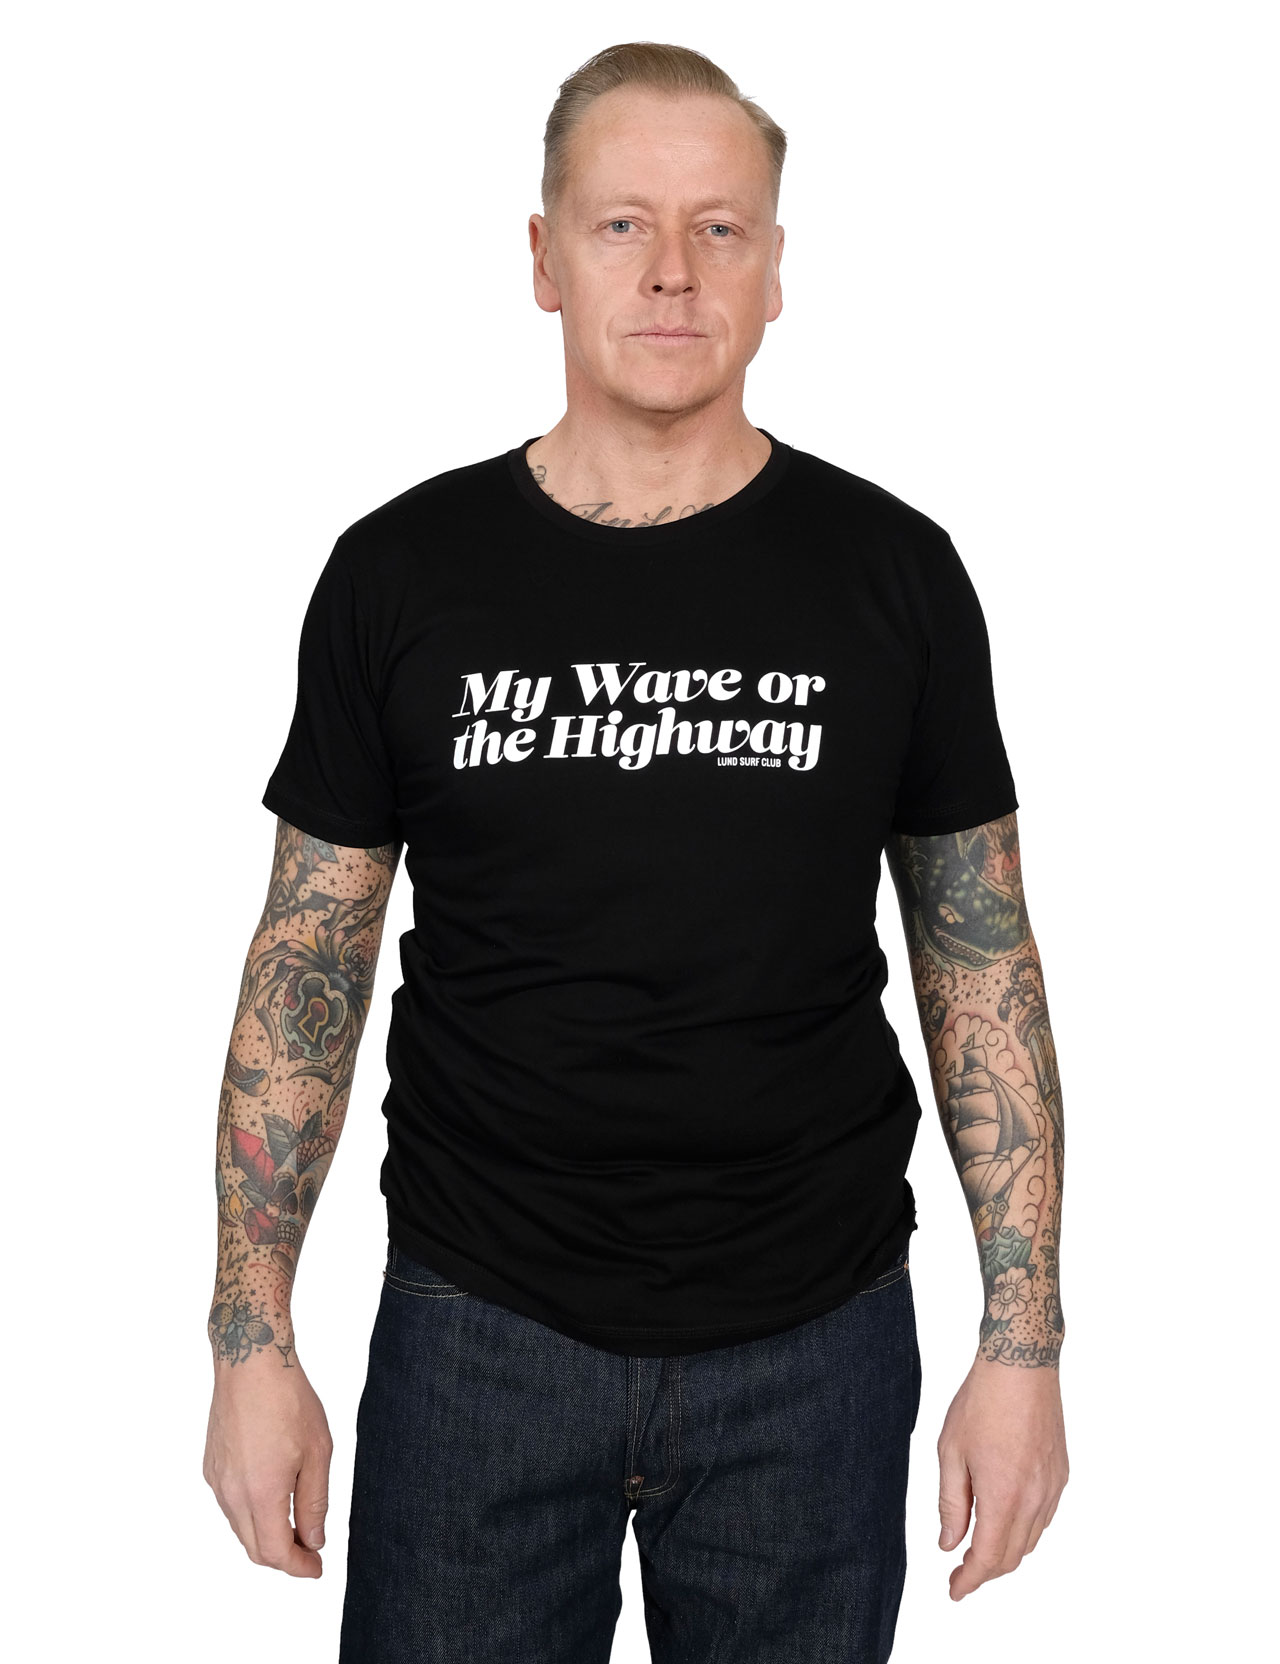 LSC---My-Wave-or-the-Highway-Tee---Black-1